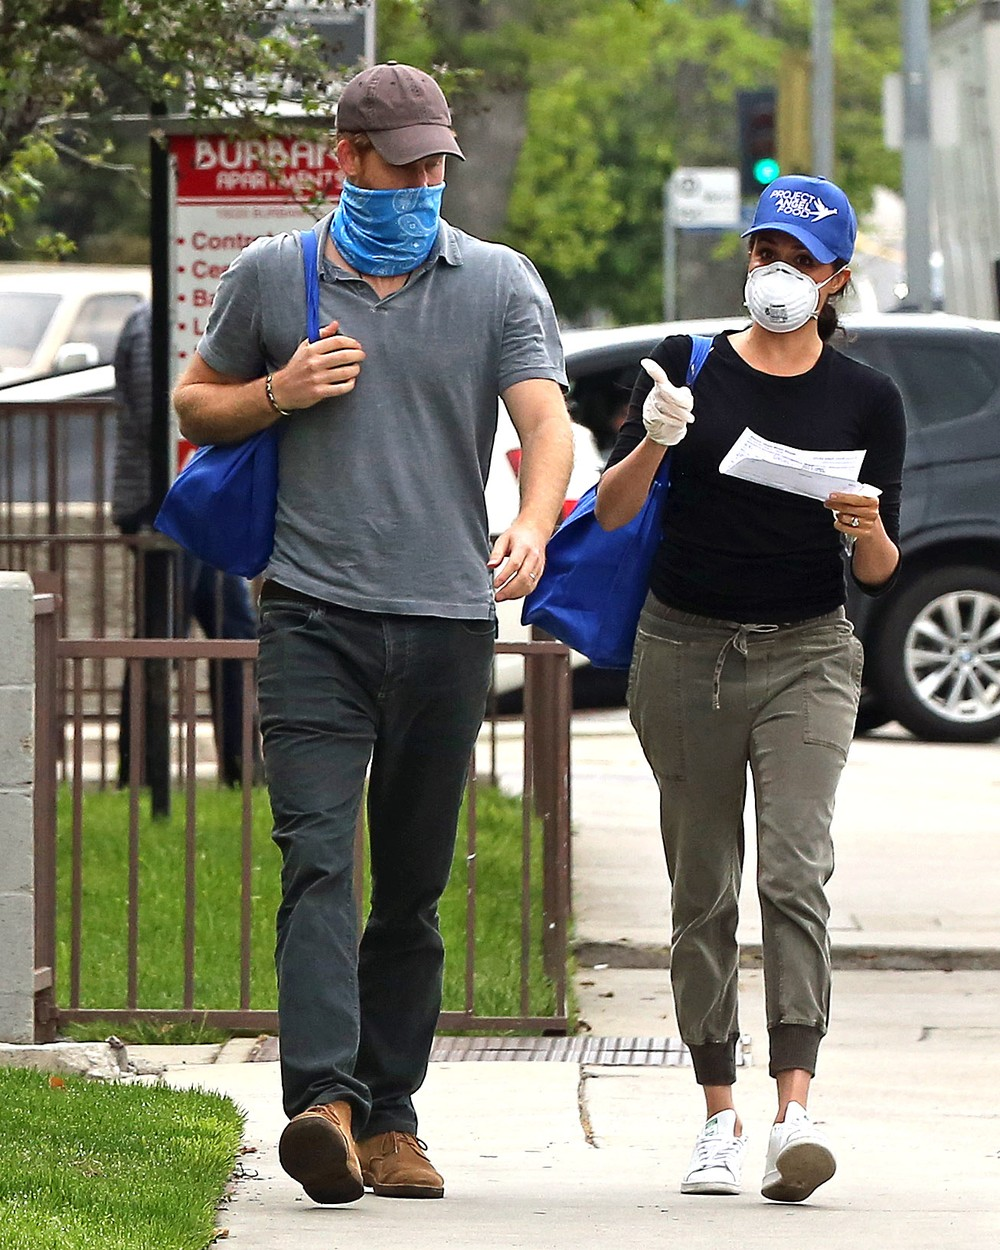 *PREMIUM EXCLUSIVE STRICTLY NO WEB UNTIL 1300 EDT 19TH APR* Prince Harry and Meghan Markle are seen in LA wearing masks as they deliver meals to residents in need during the COVID-19 pandemic. The couple were pictured delivering packages after volunteering with the non-profit organisation Project Angel Food. The former Duke and Duchess of Sussex were seen linking arms and holding hands after dropping off deliveries to addresses in their new city. Mandatory Credit: P&P/Rachpoot/MEGA. 17 Apr 2020, Image: 514274030, License: Rights-managed, Restrictions: World Rights, Model Release: no, Credit line: P&P/Rachpoot/MEGA / The Mega Agency / Profimedia